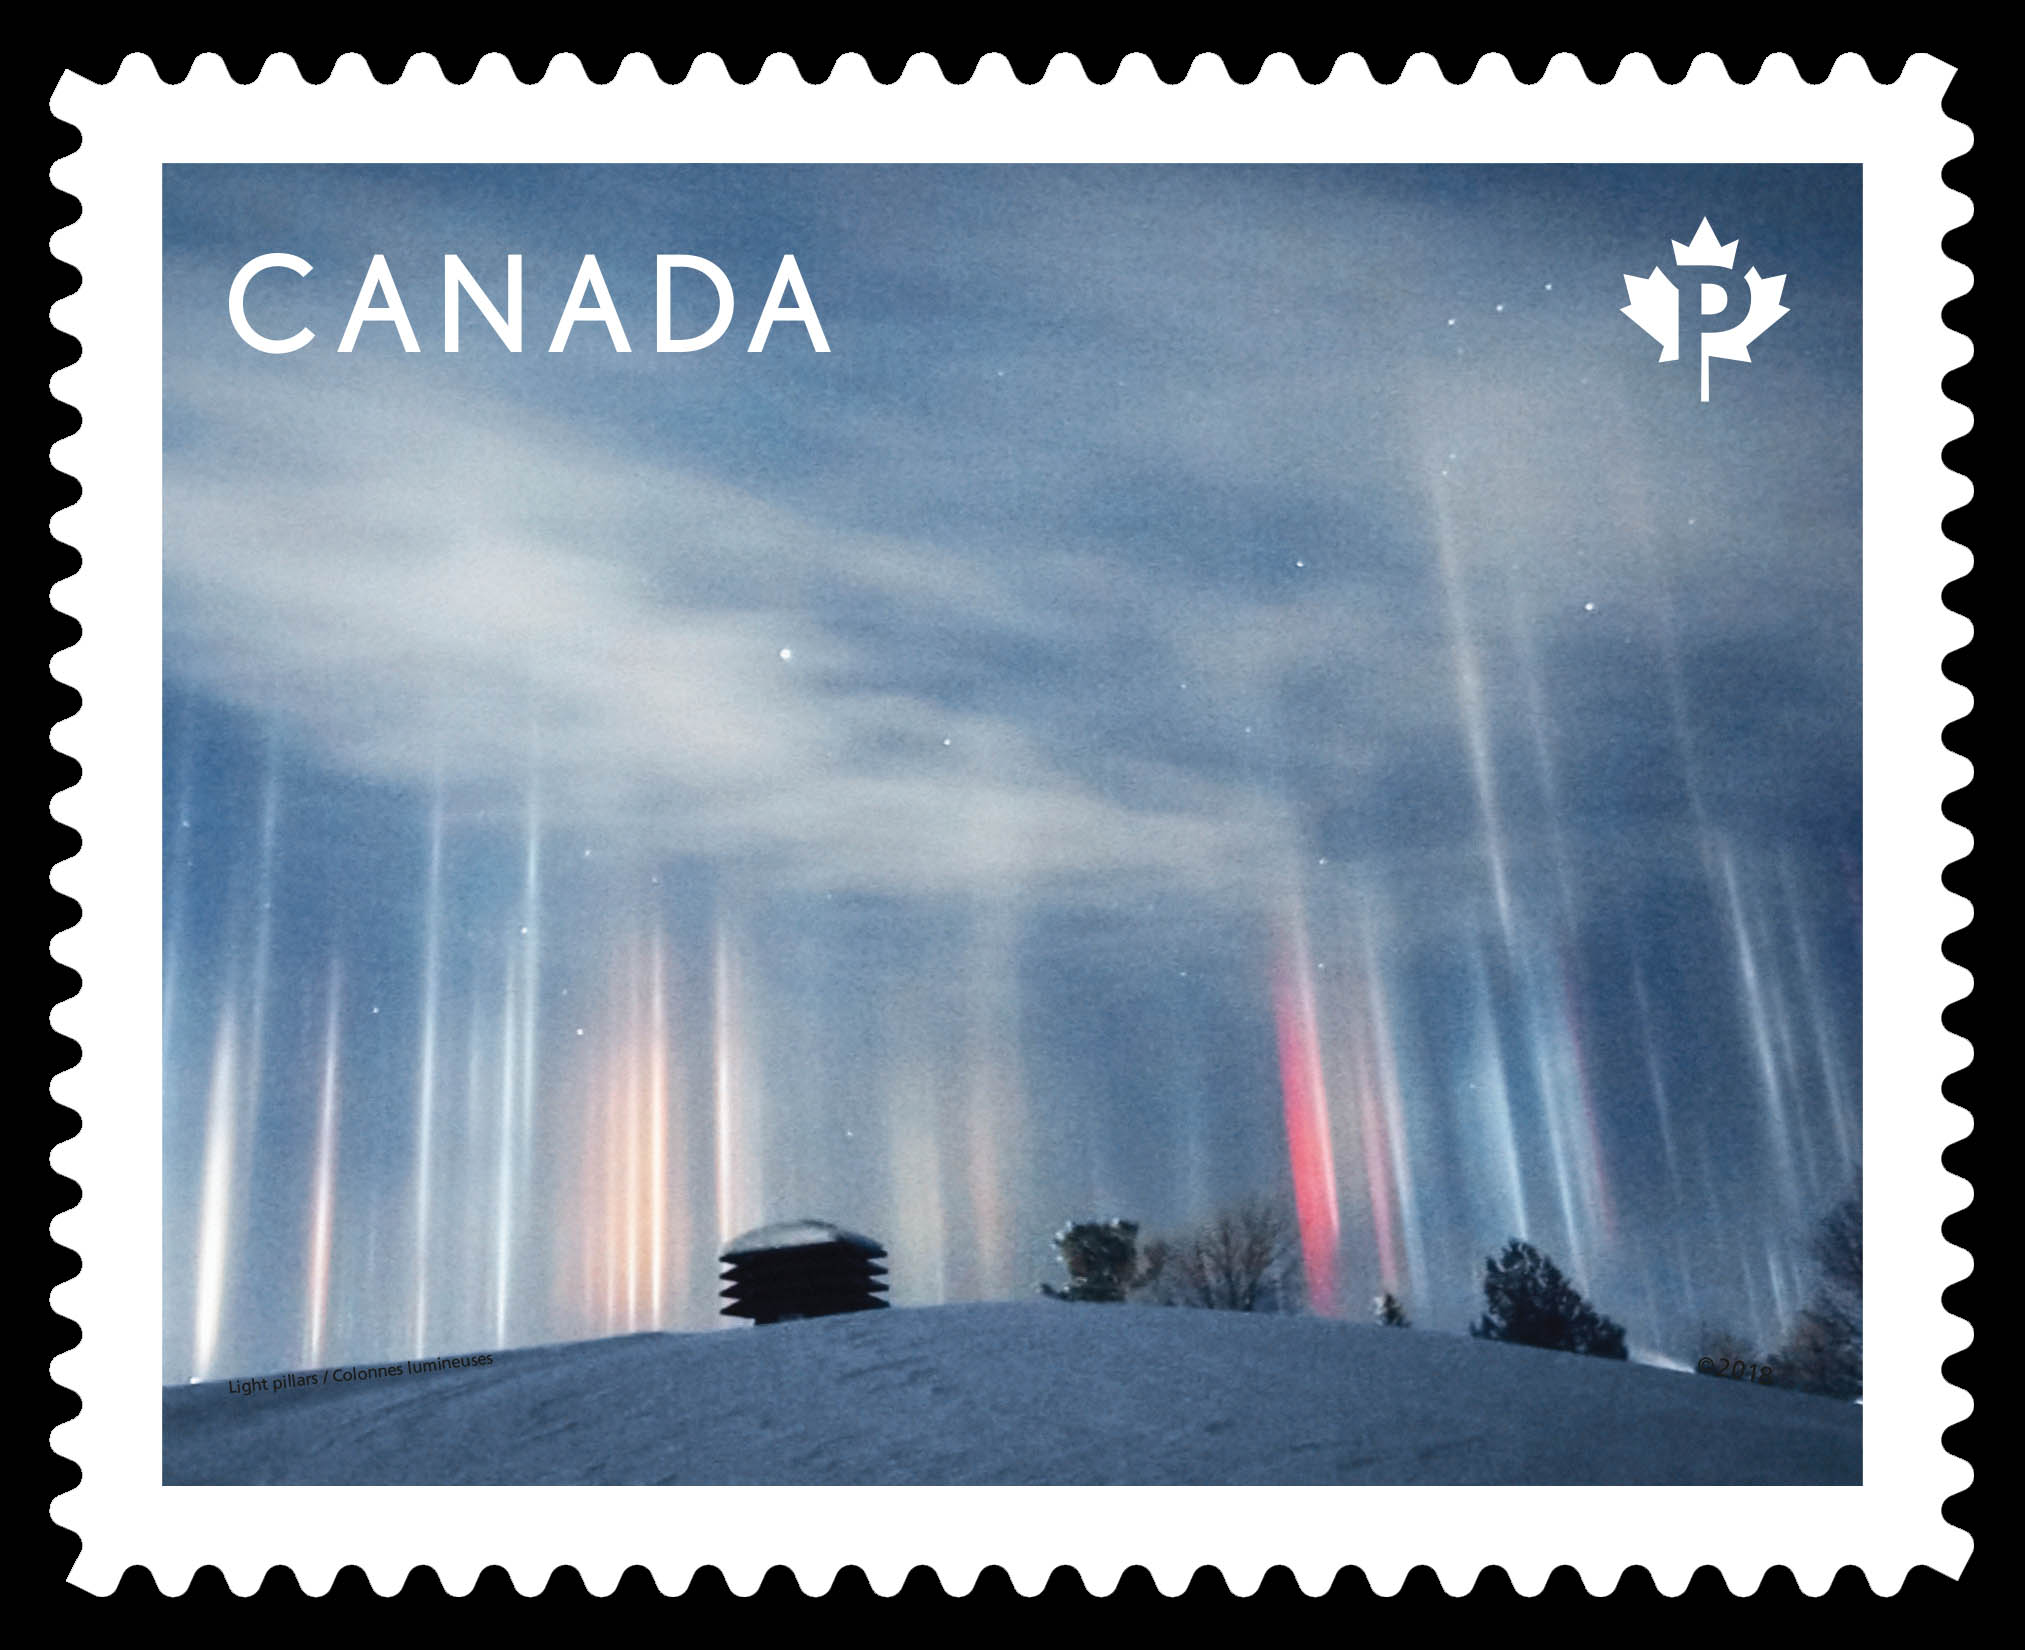 Light Pillars Canada Postage Stamp | Weather Wonders